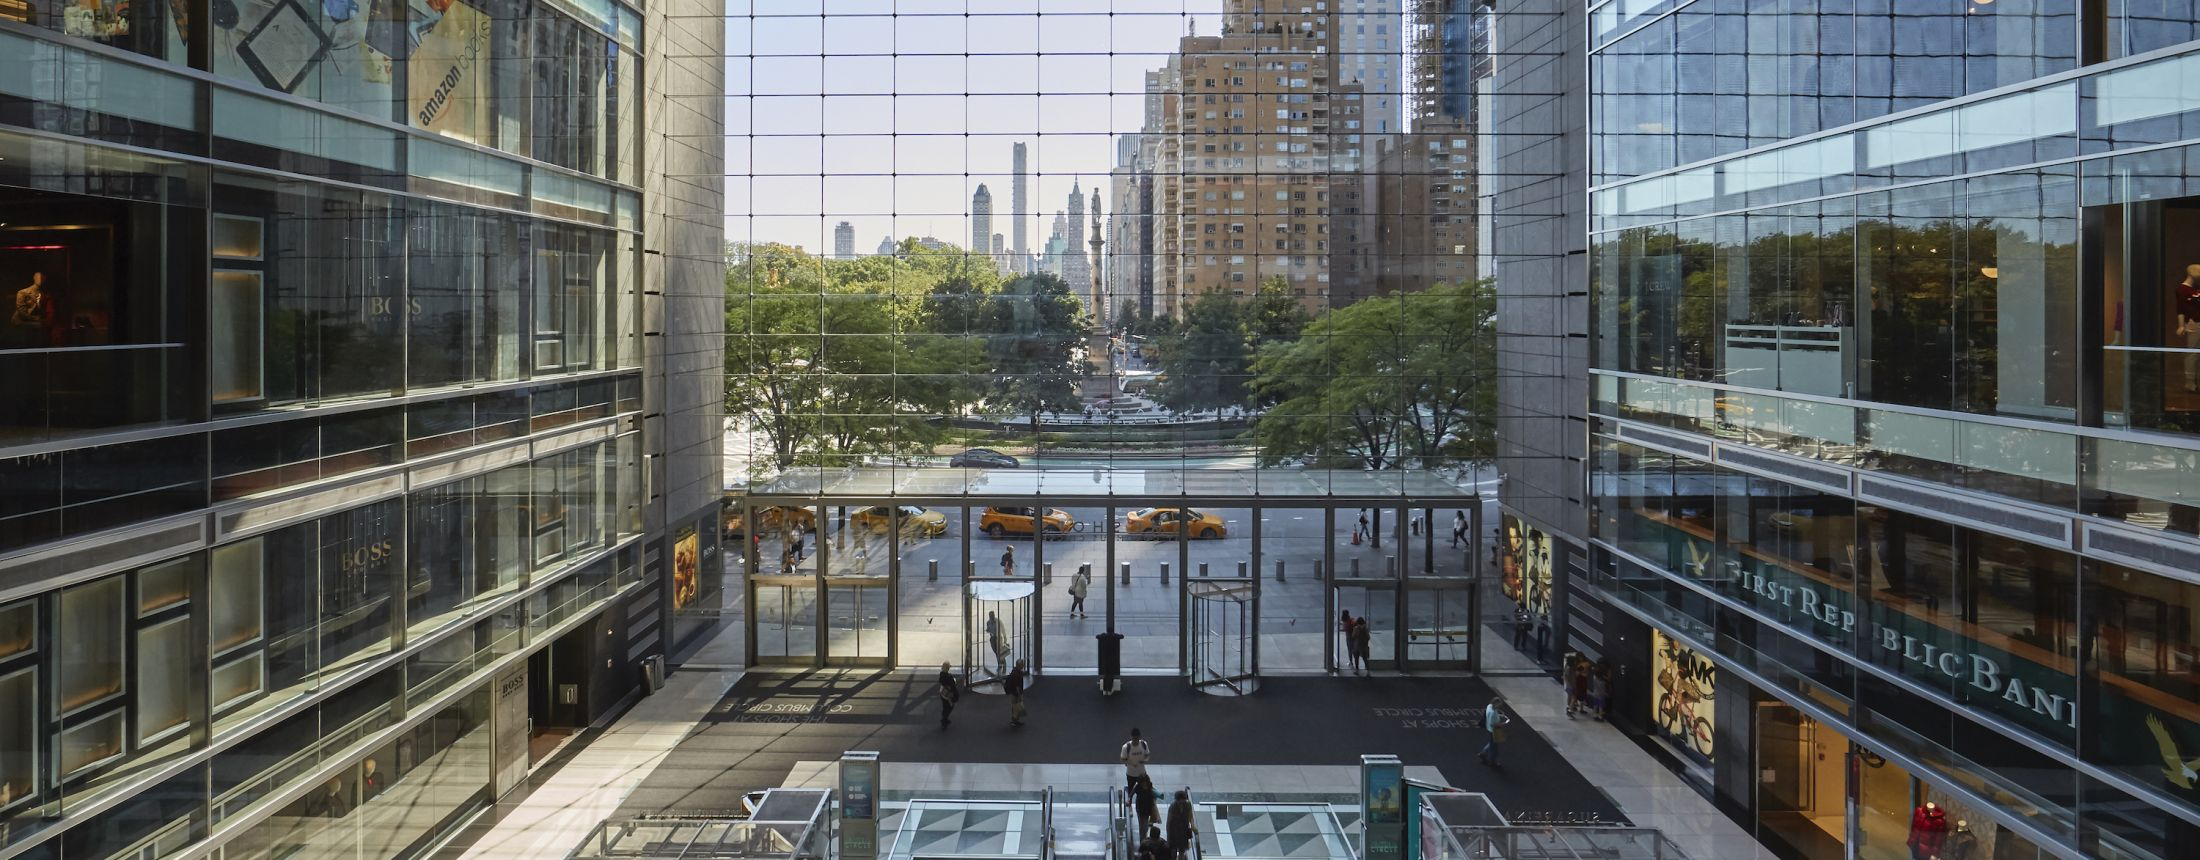 Large open area with glass windows and escalators in The Shops at Columbus Circle